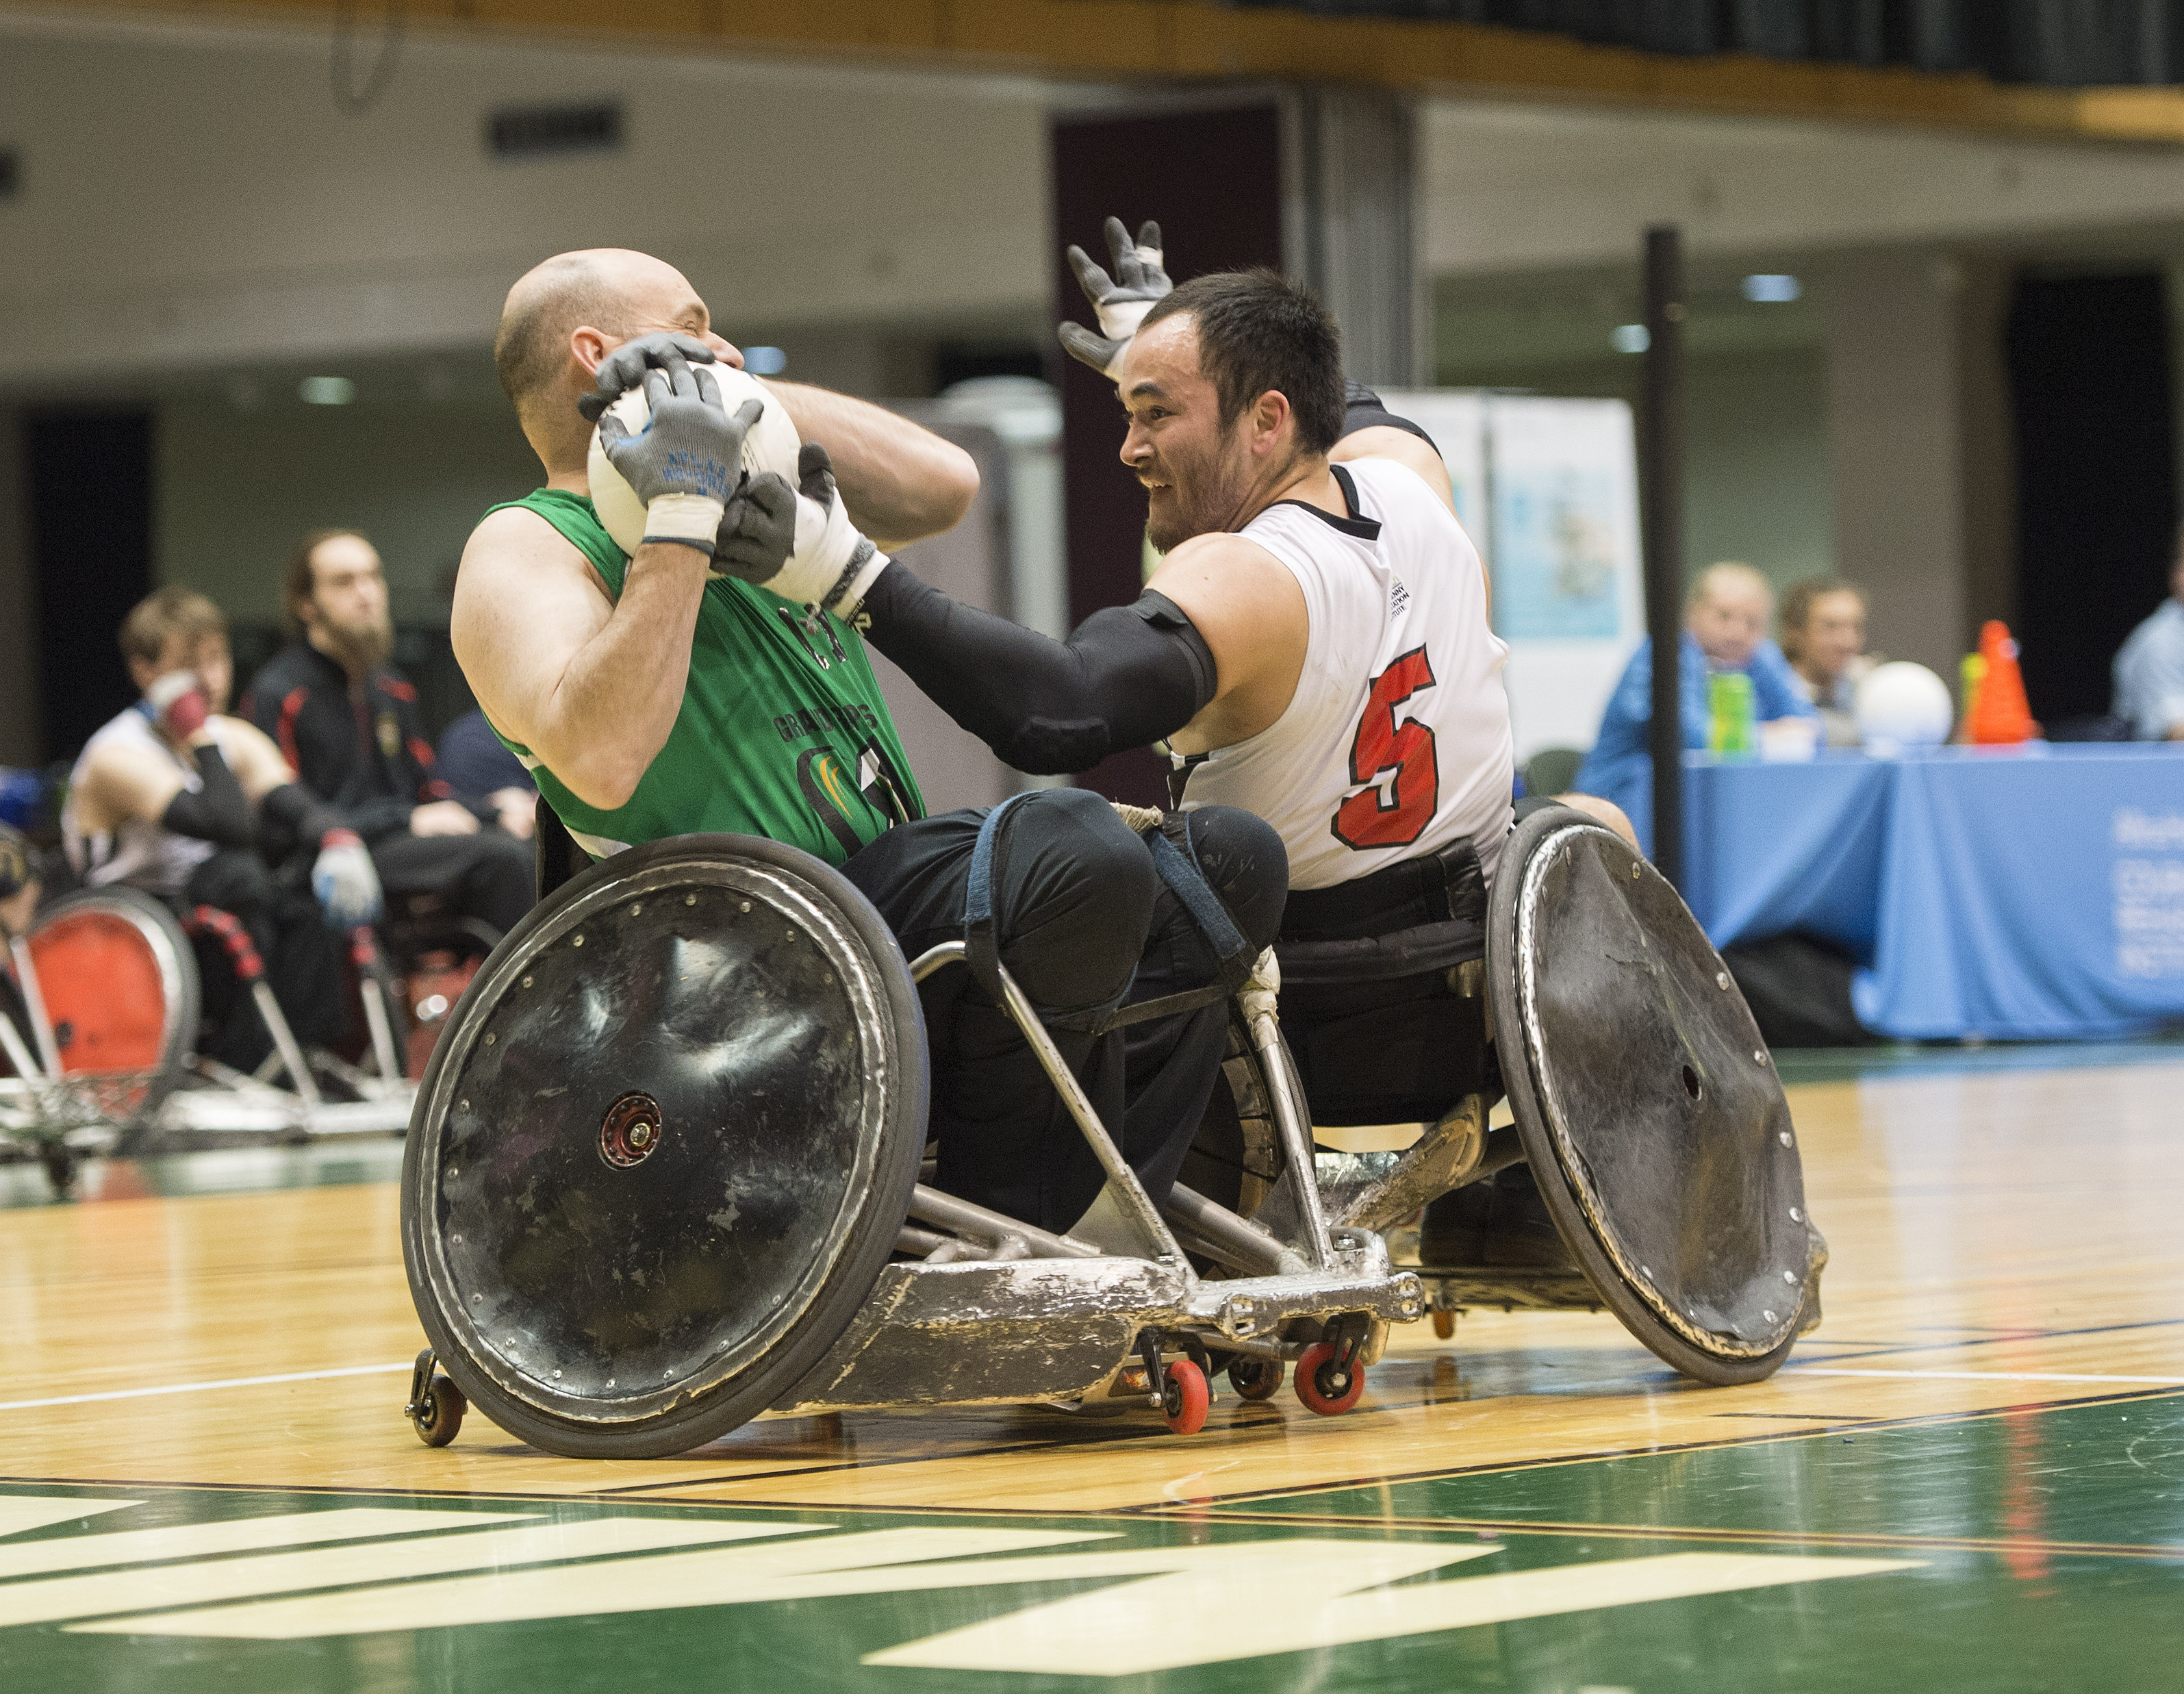 Two individuals playing wheelchair rugby.